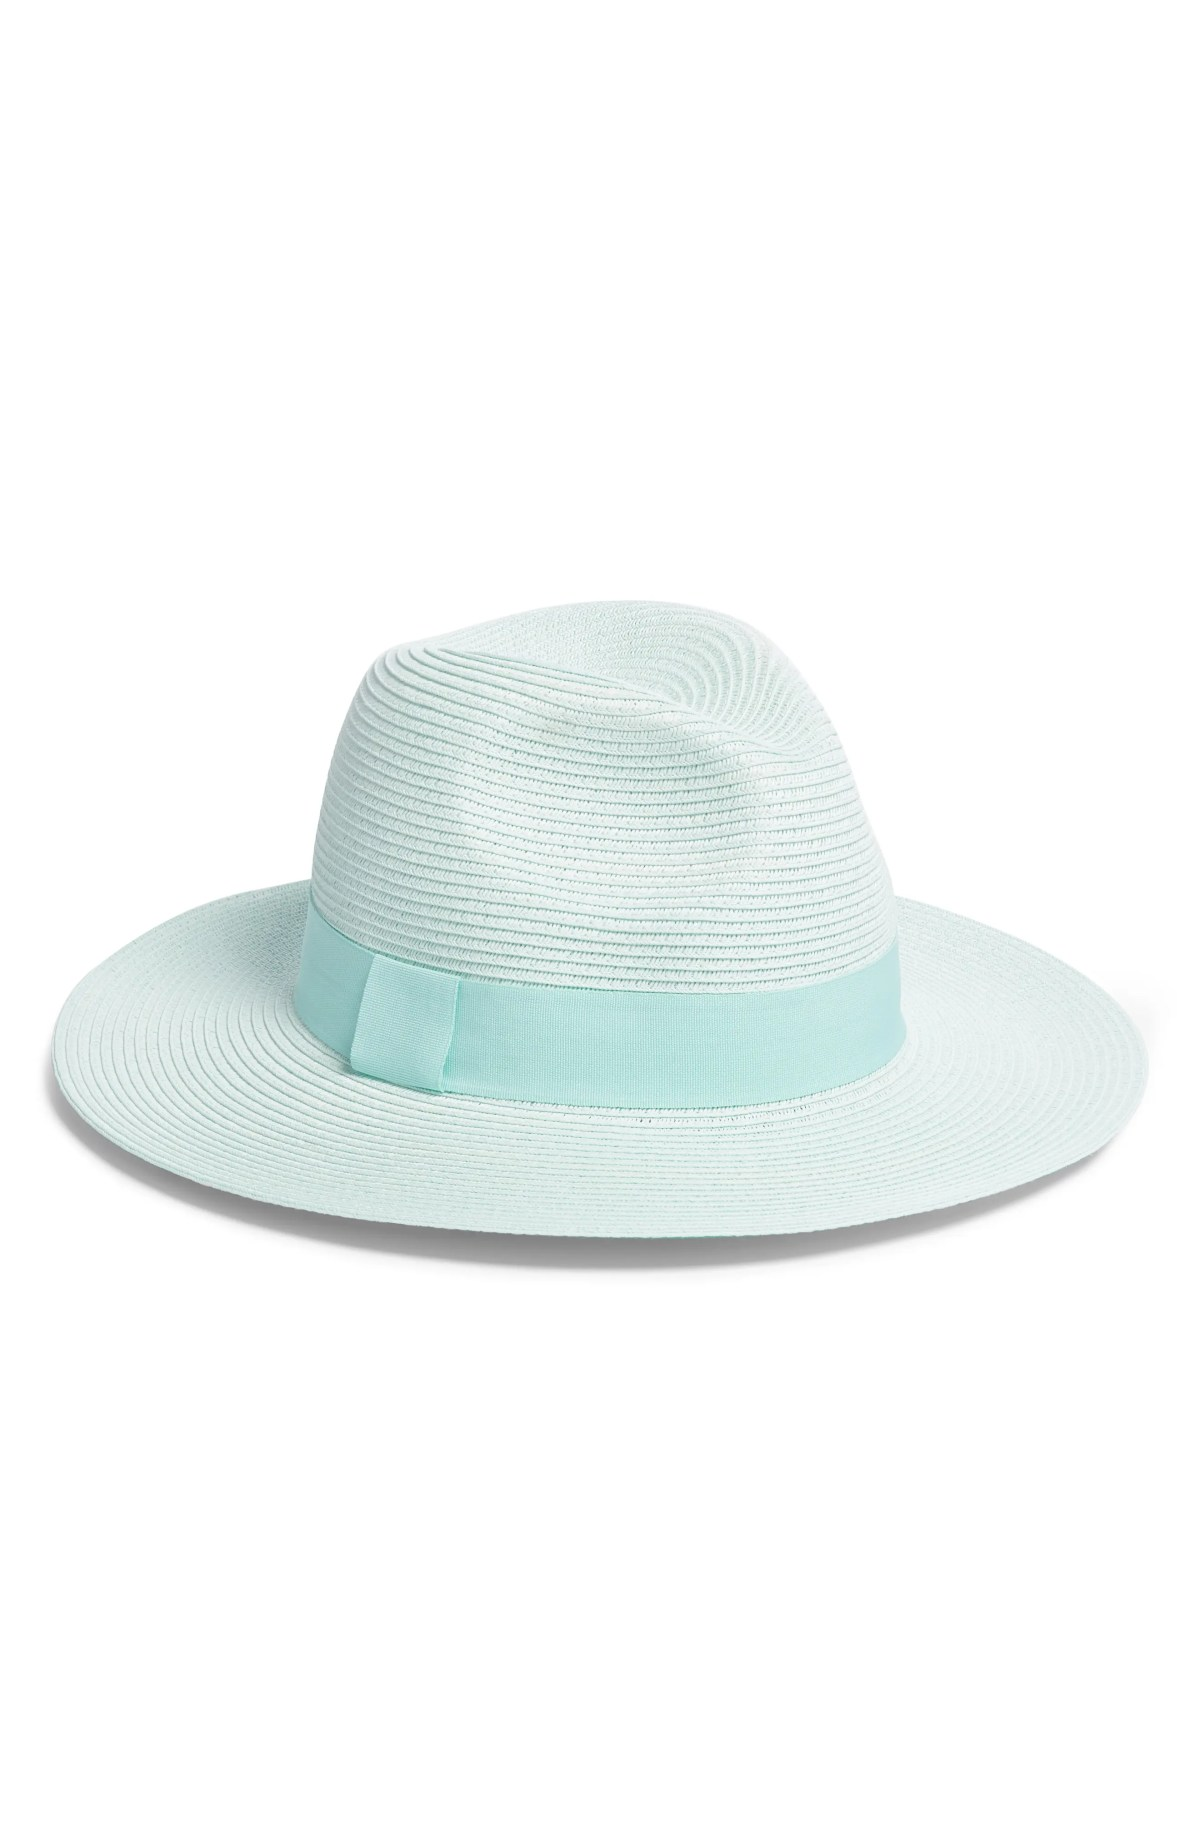 Woven Panama Hat, Main, color, GREEN AQUA